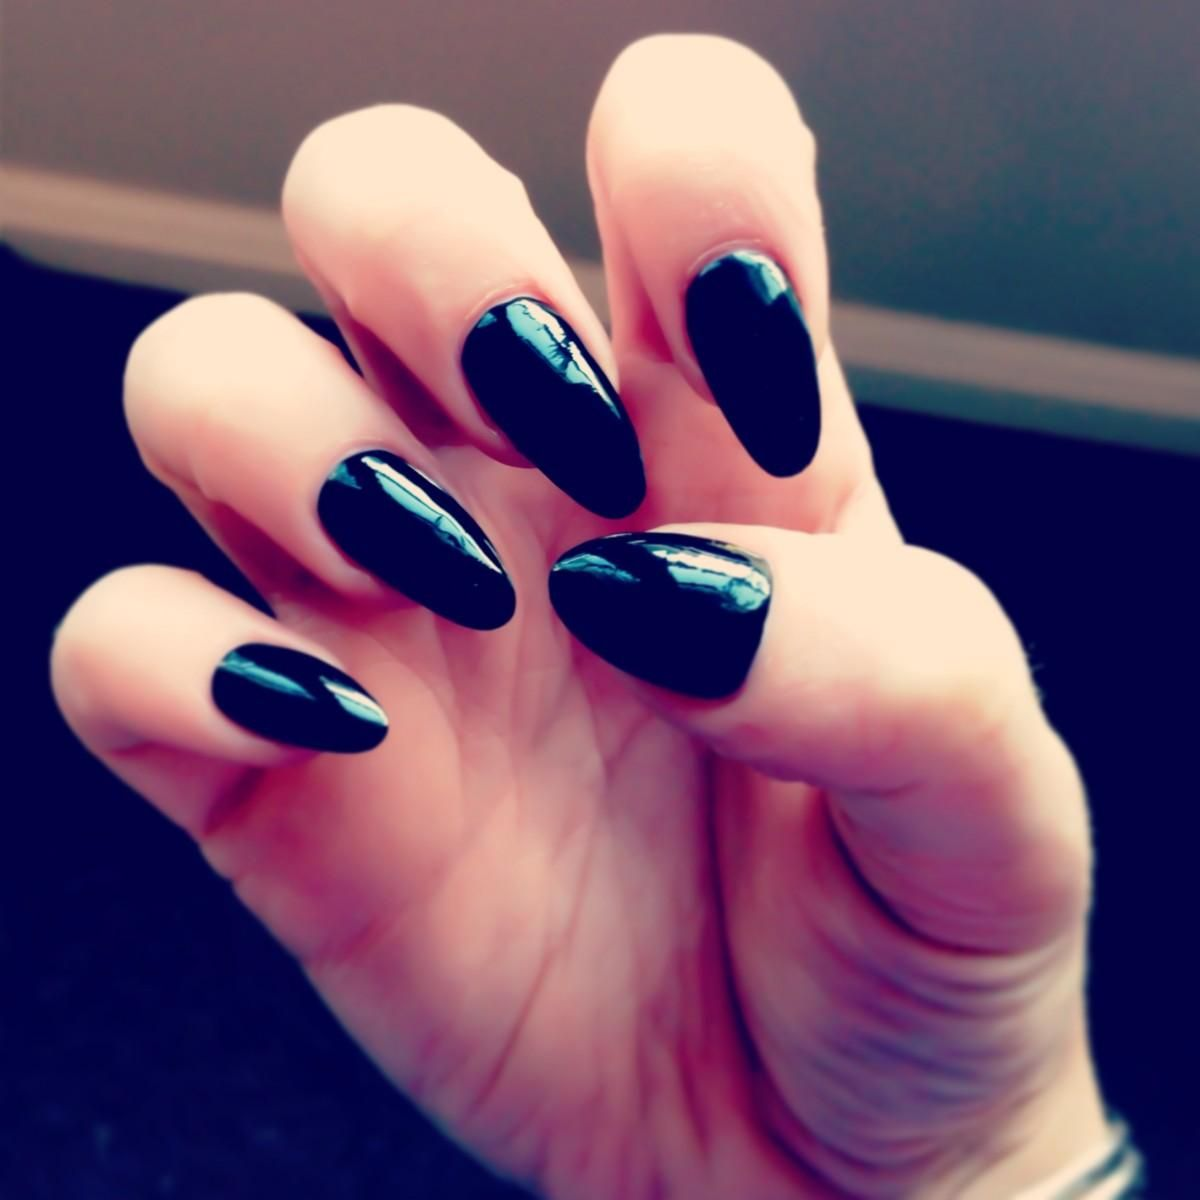 Pointed Nail Art Designs ... | Nail Designs | Pinterest | Pointed nails